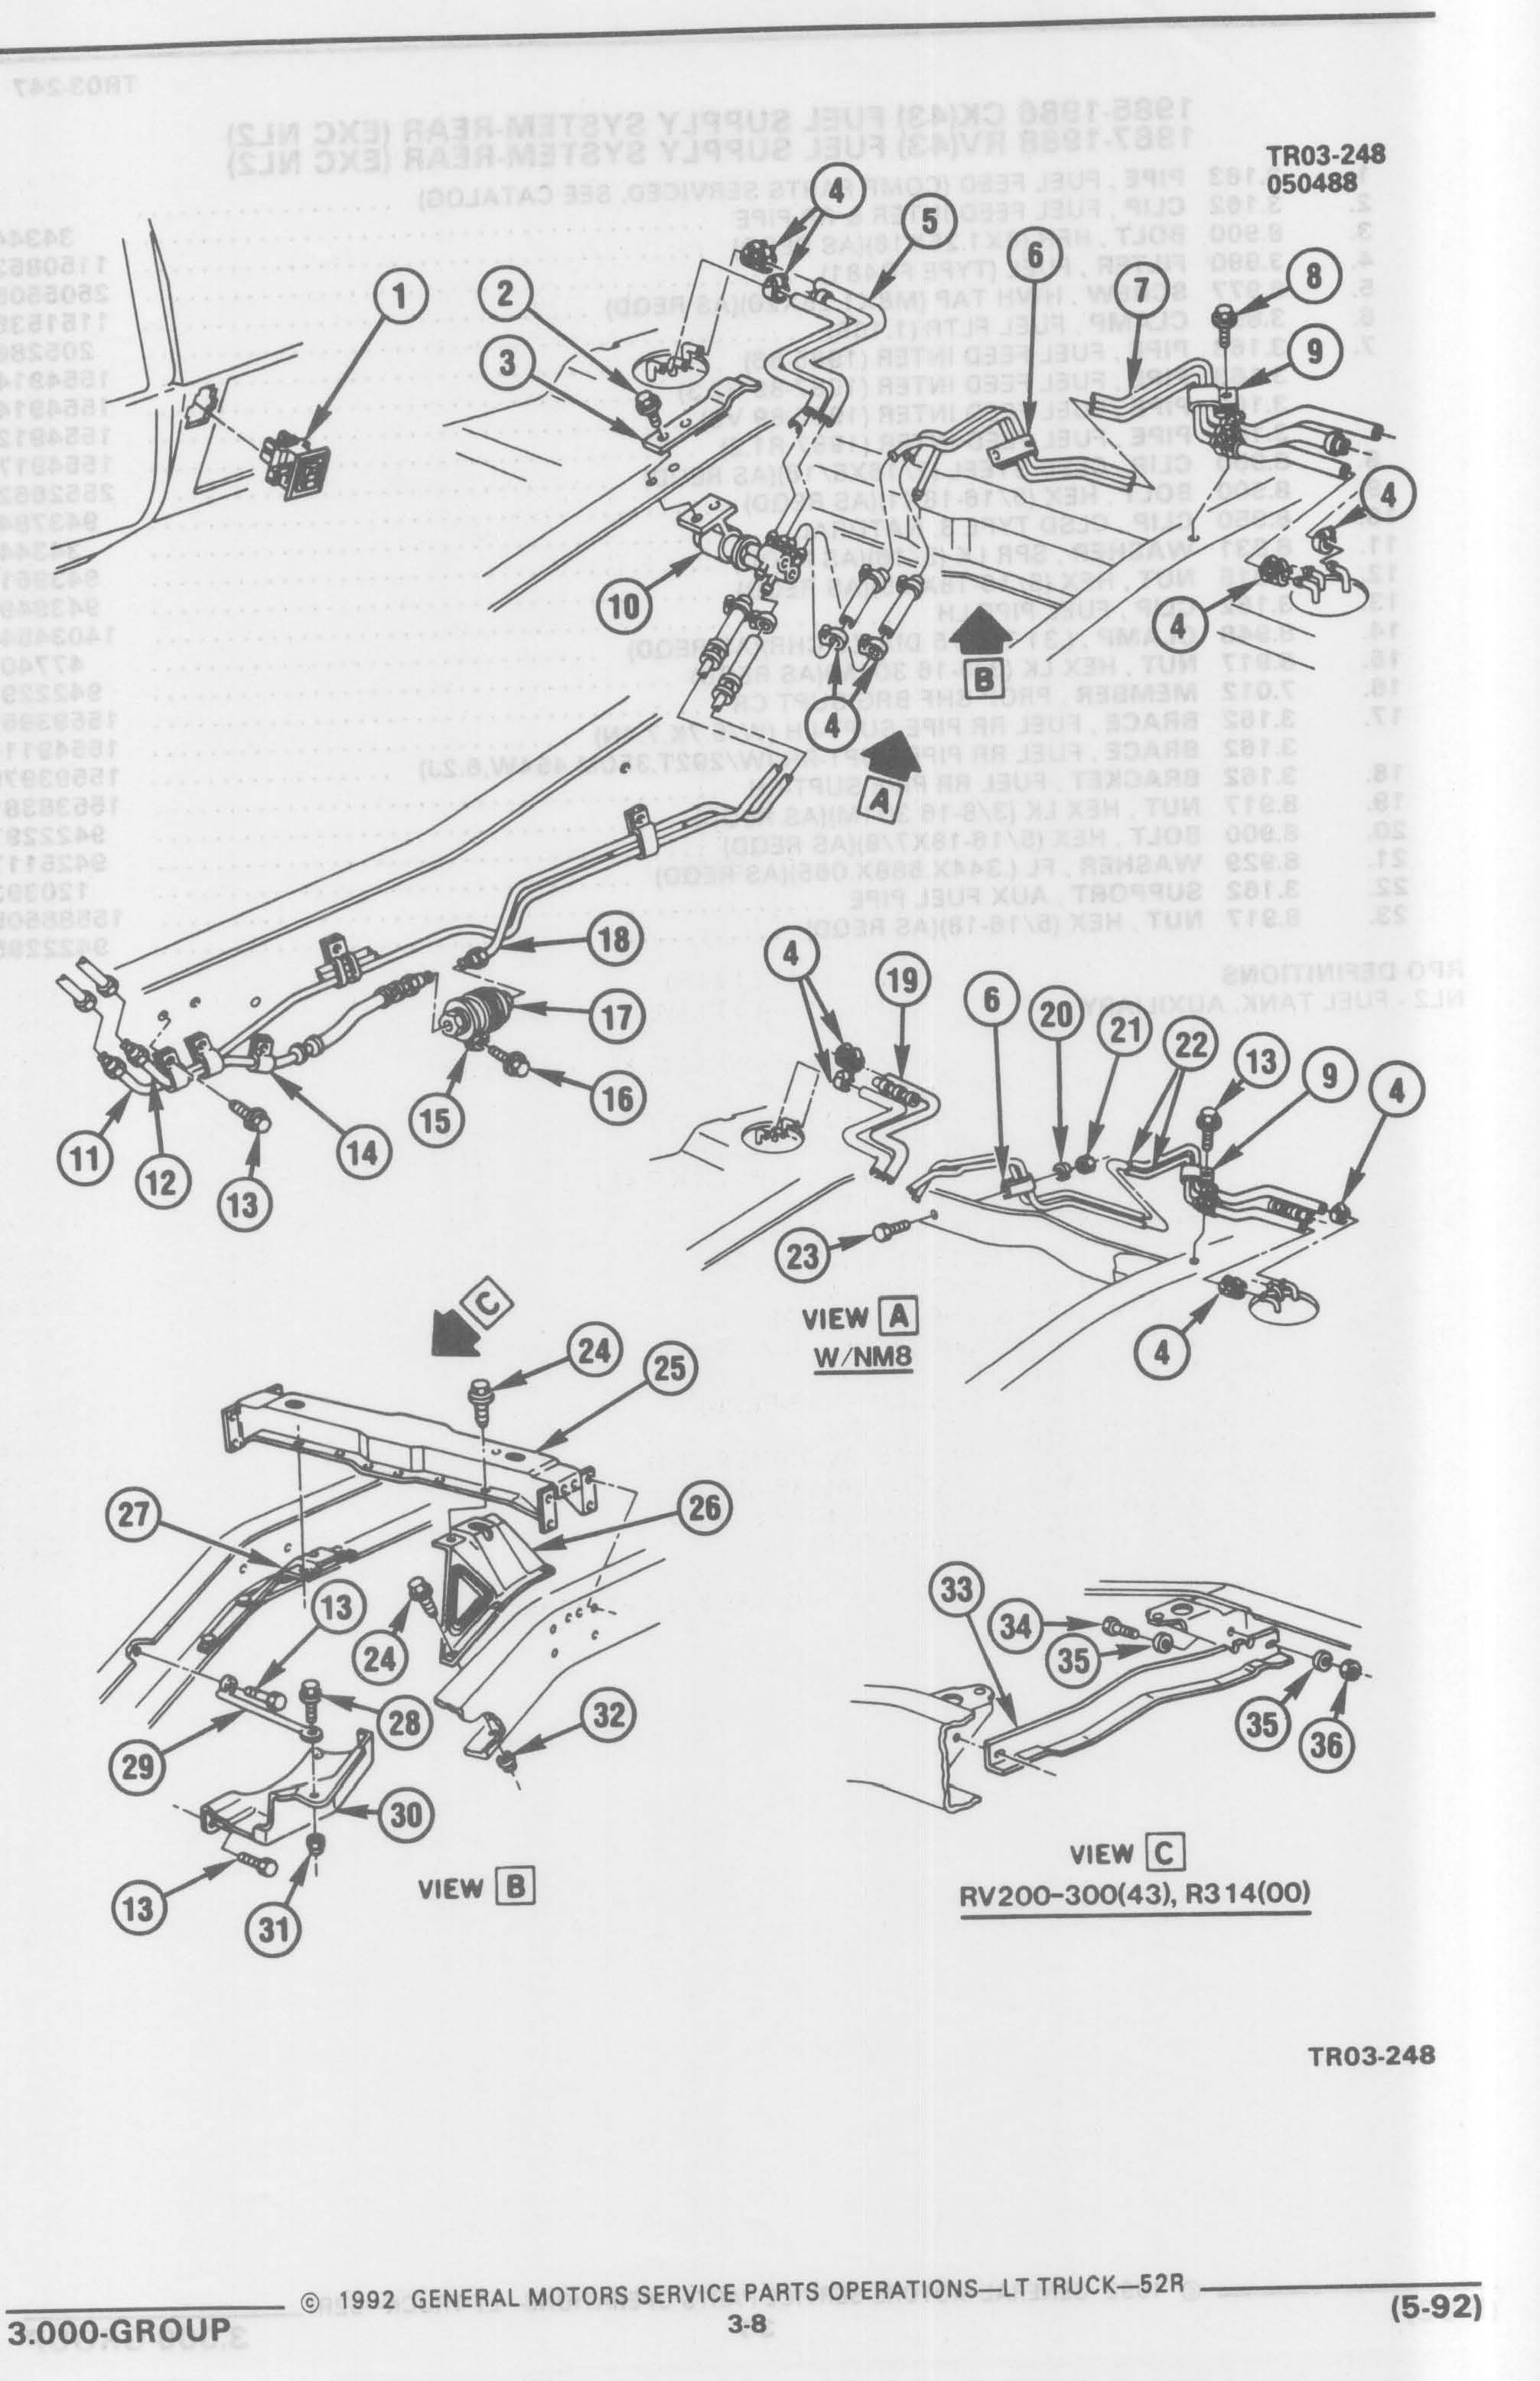 [DIAGRAM] 1989 Chevrolet K5 Blazer Wiring Diagram FULL